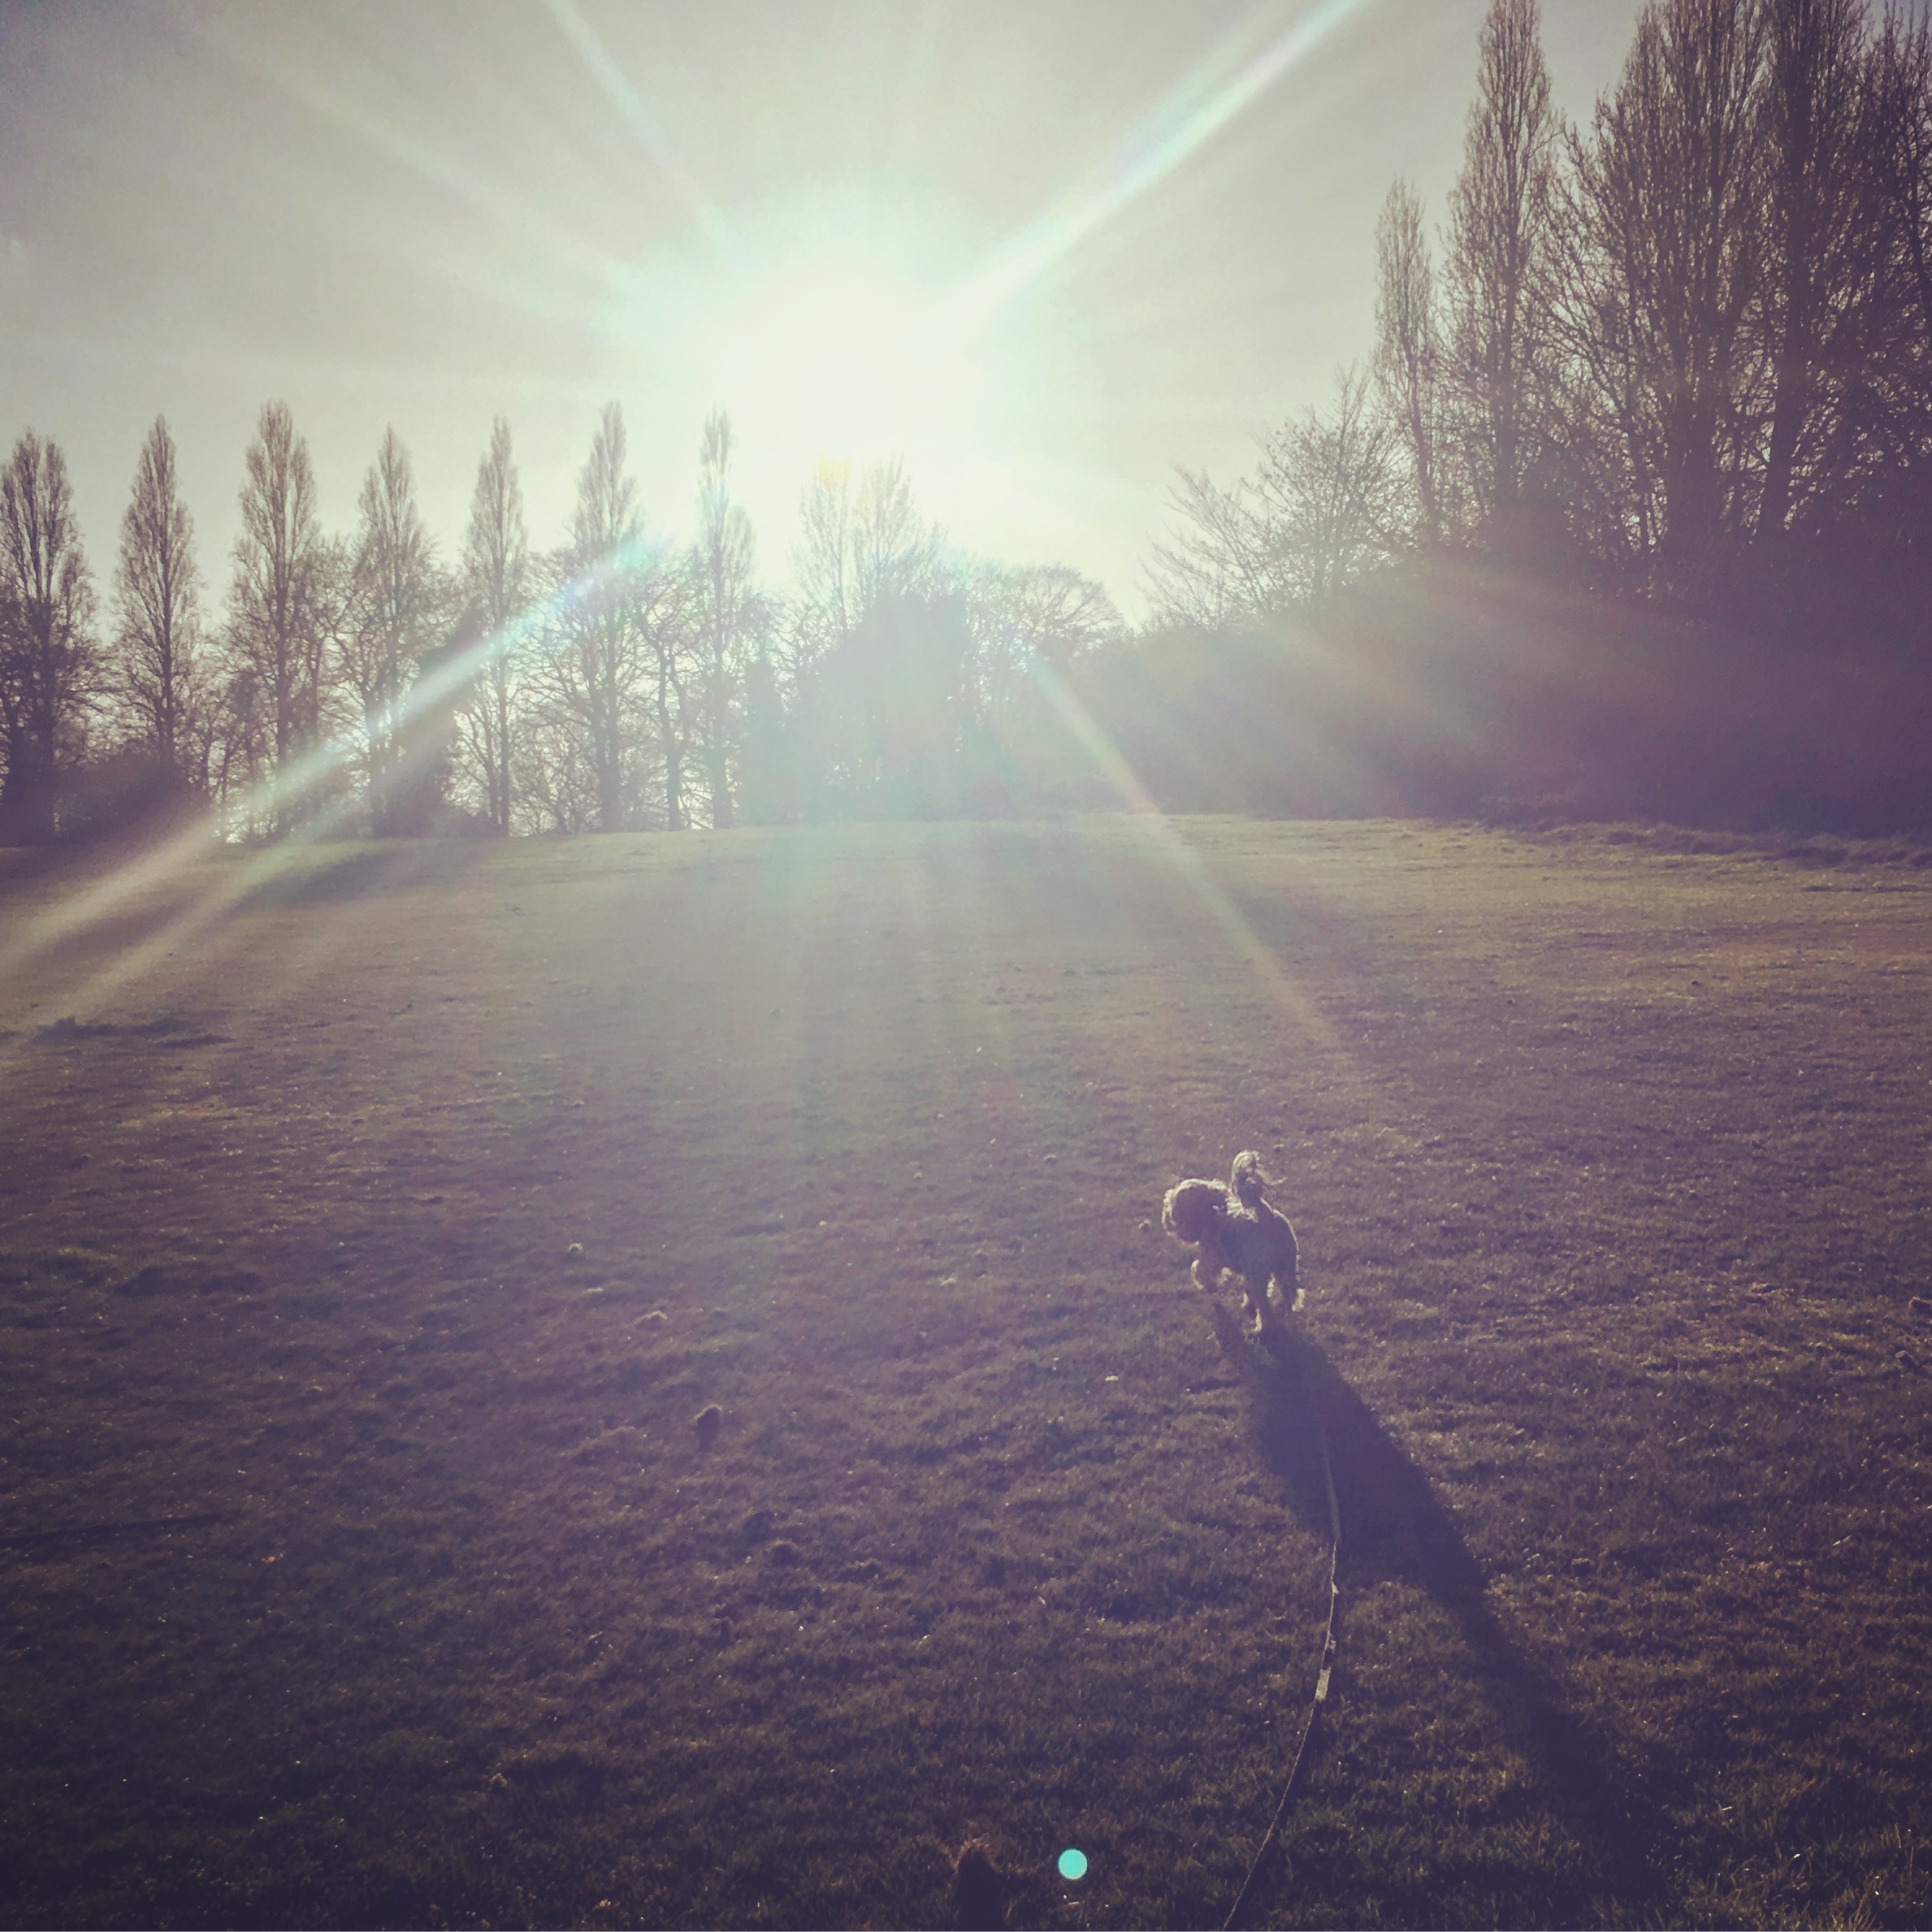 Our dog running into beautiful sunlight in the park near our new house. We explored here a lot before moving house